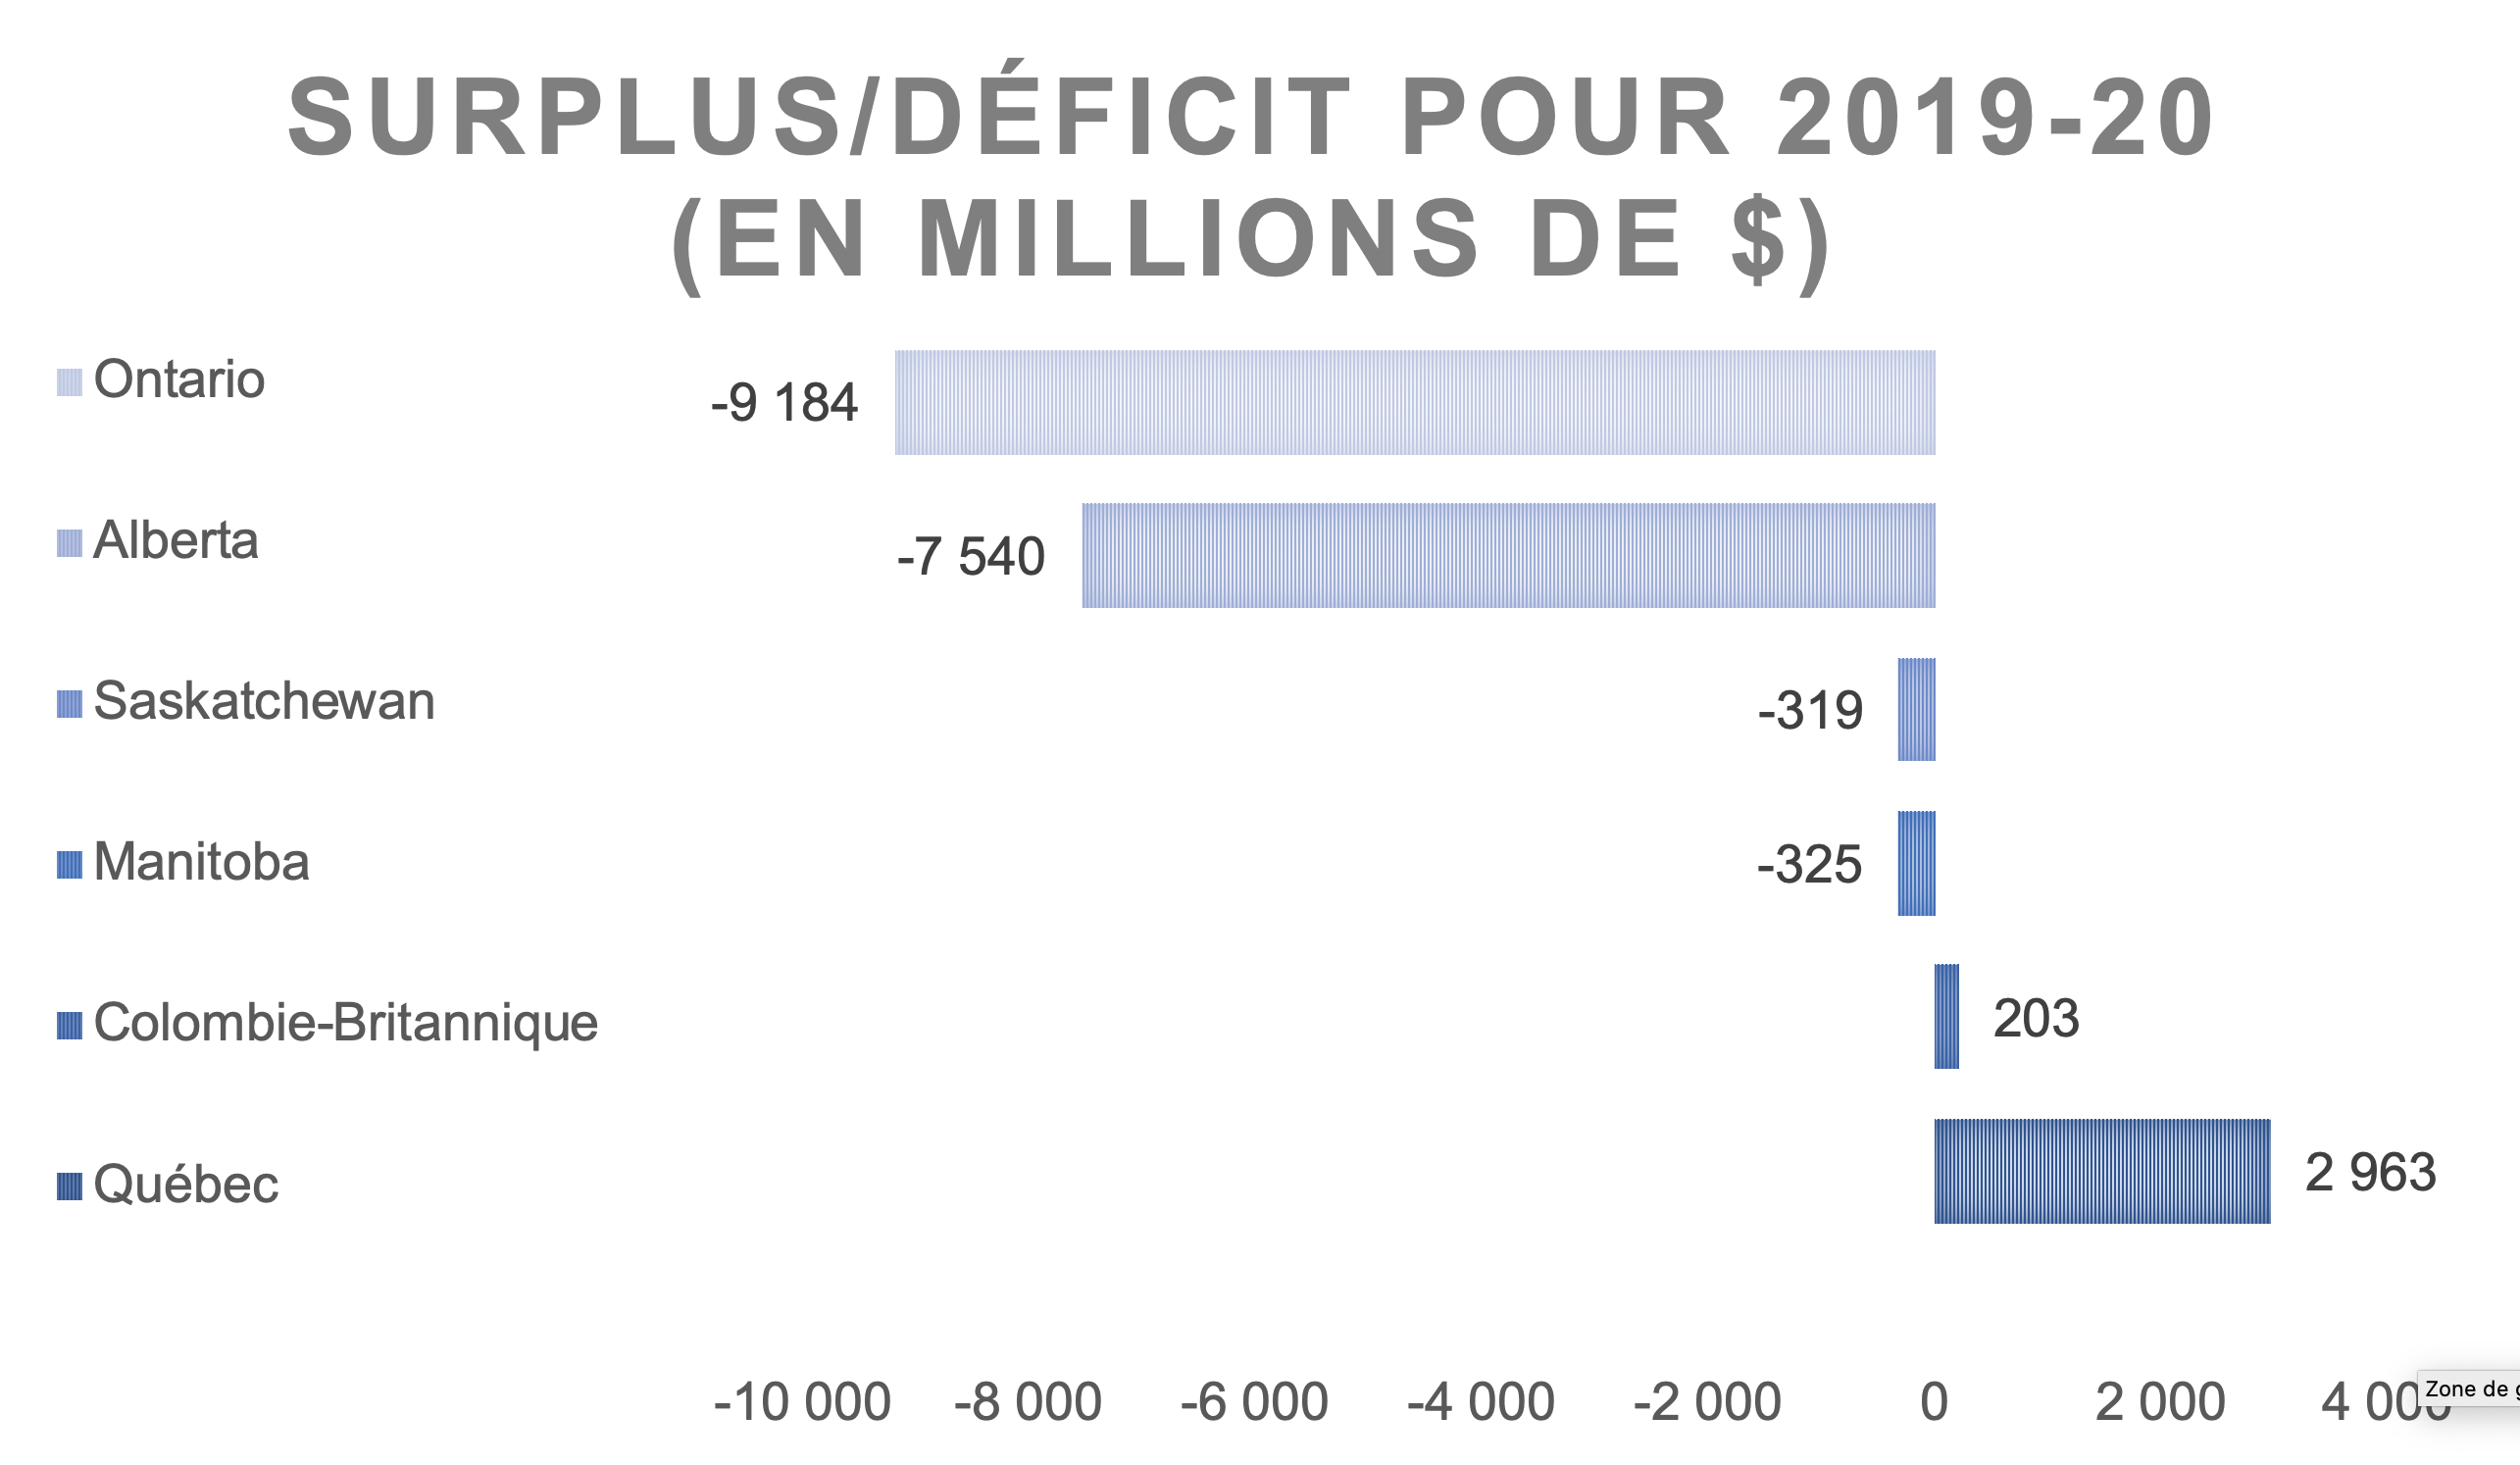 Surplus / déficit 2019-2020